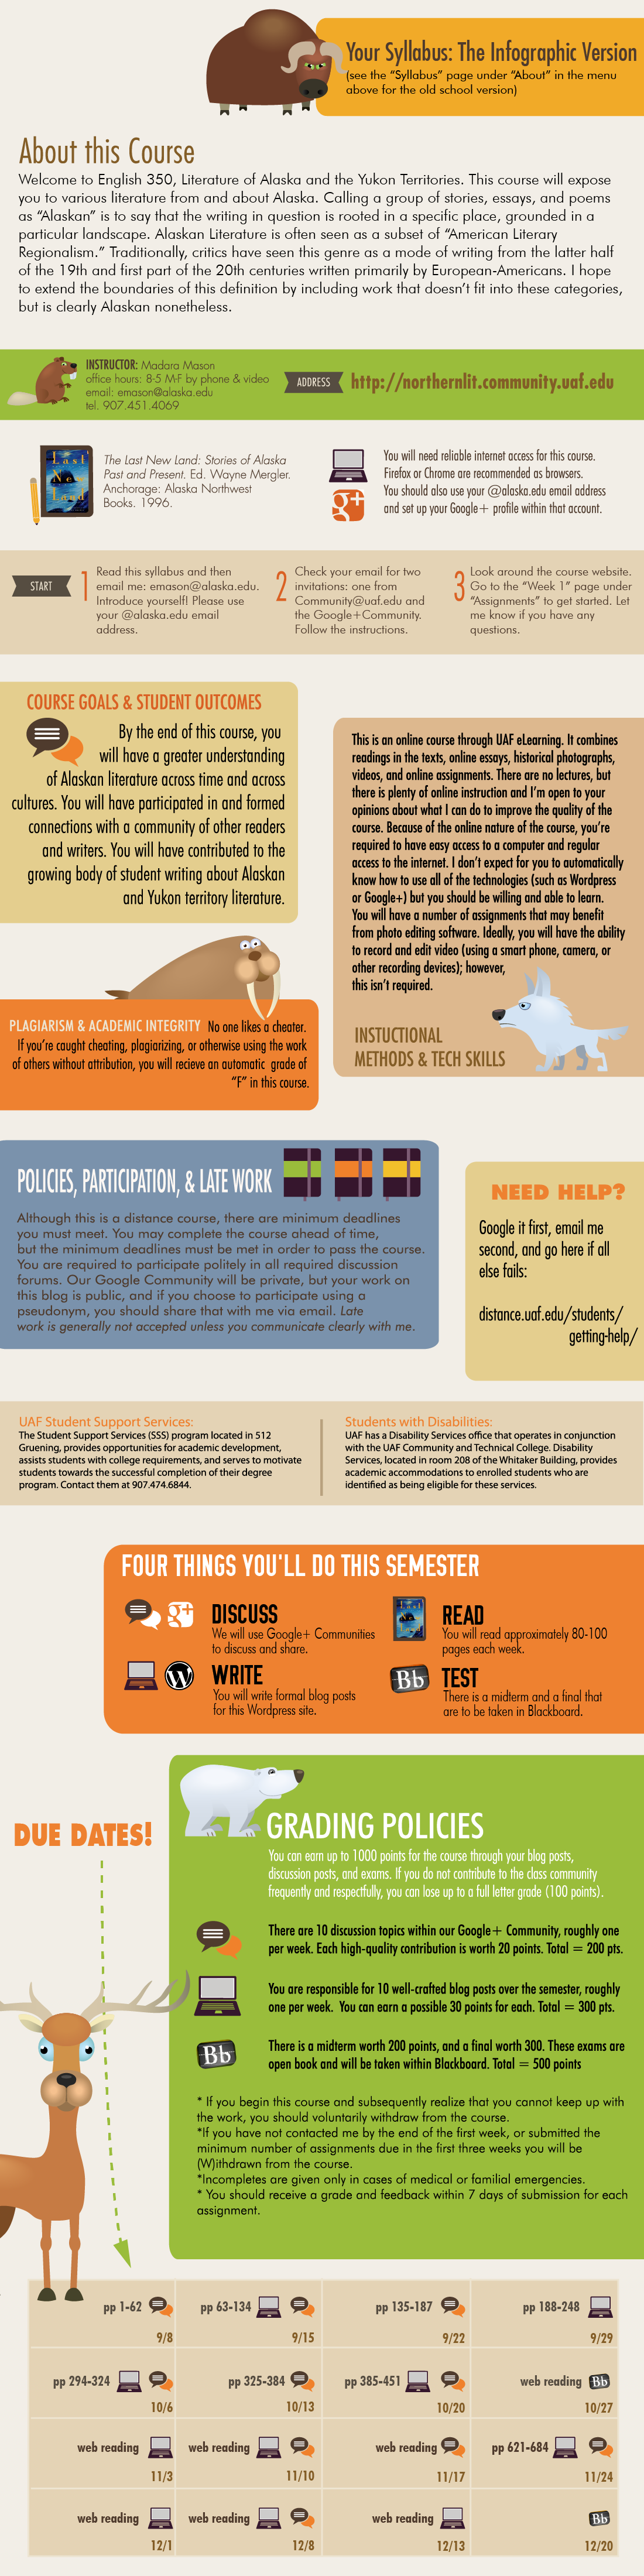 Goal For Next Semester Make An Infographic Syllabus